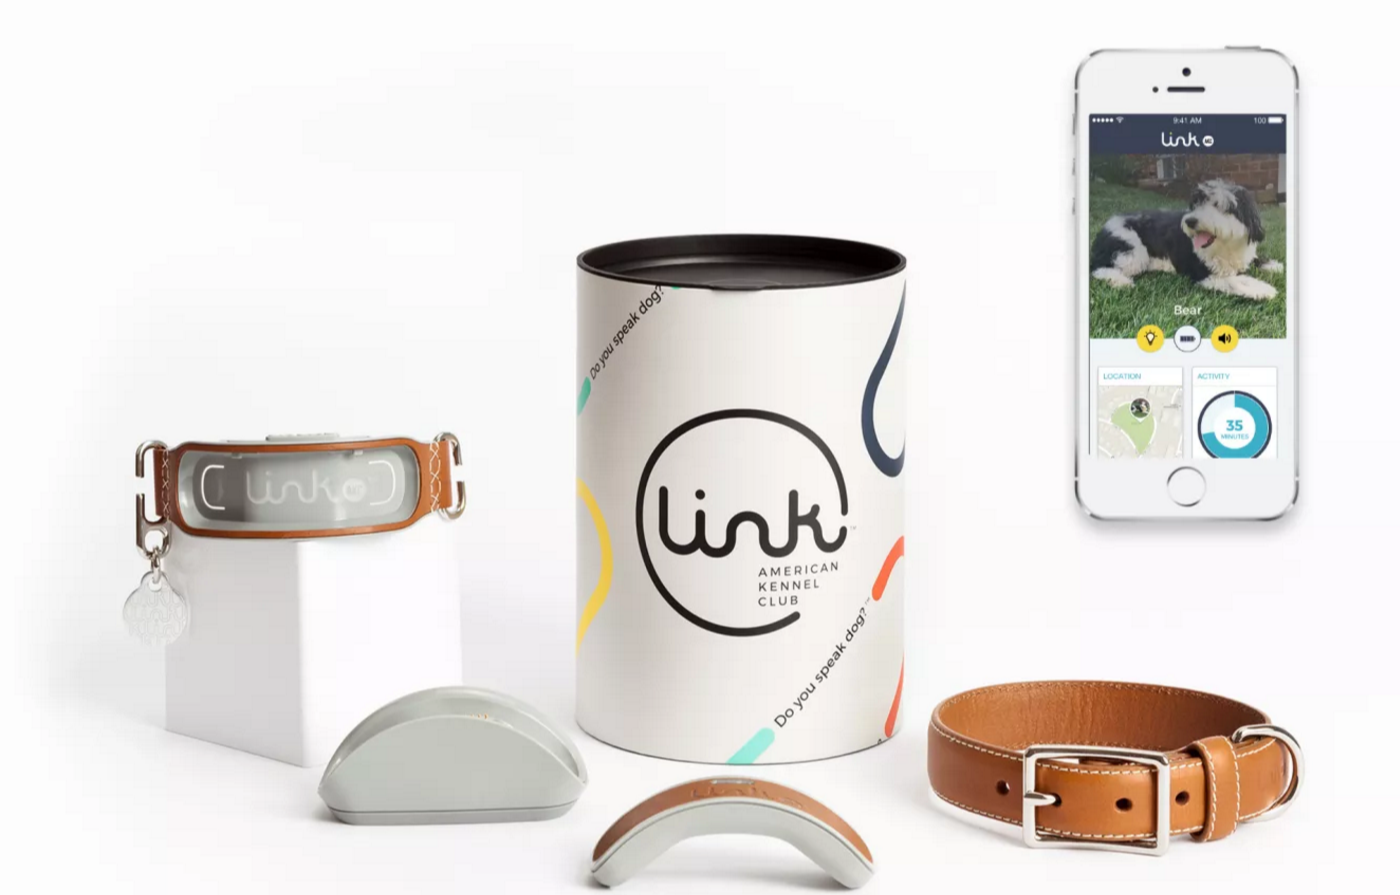 image for the asset titled: LinkAKC: Smart GPS Dog Collar